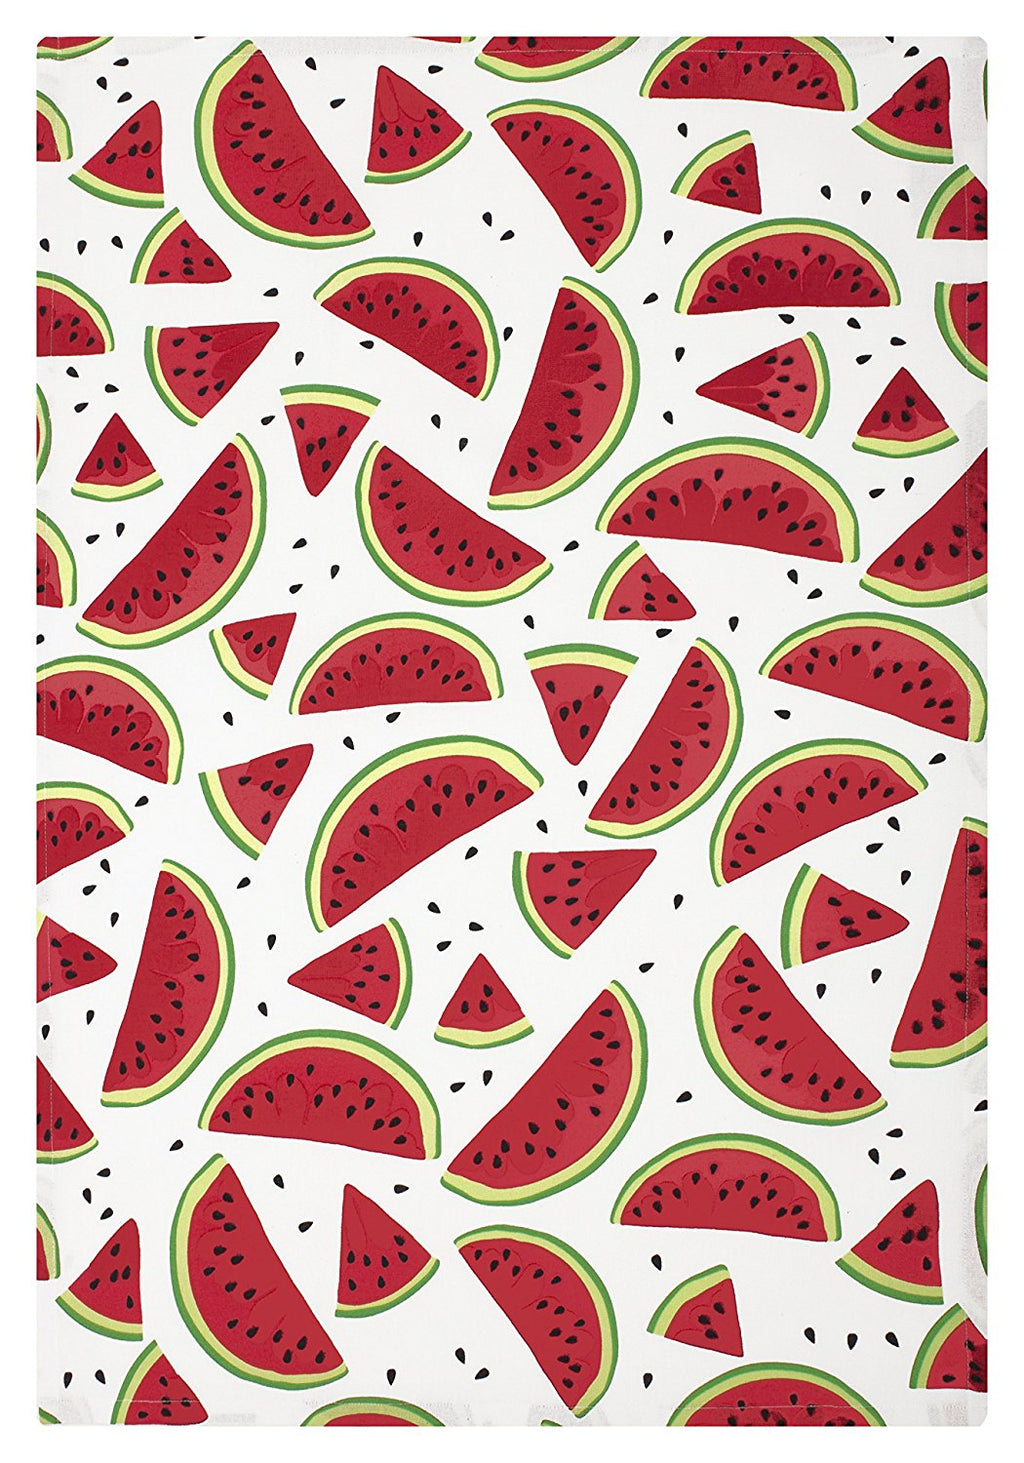 MUkitchen 6629-1861 Kitchen Towel Designer Print Set, Watermelon